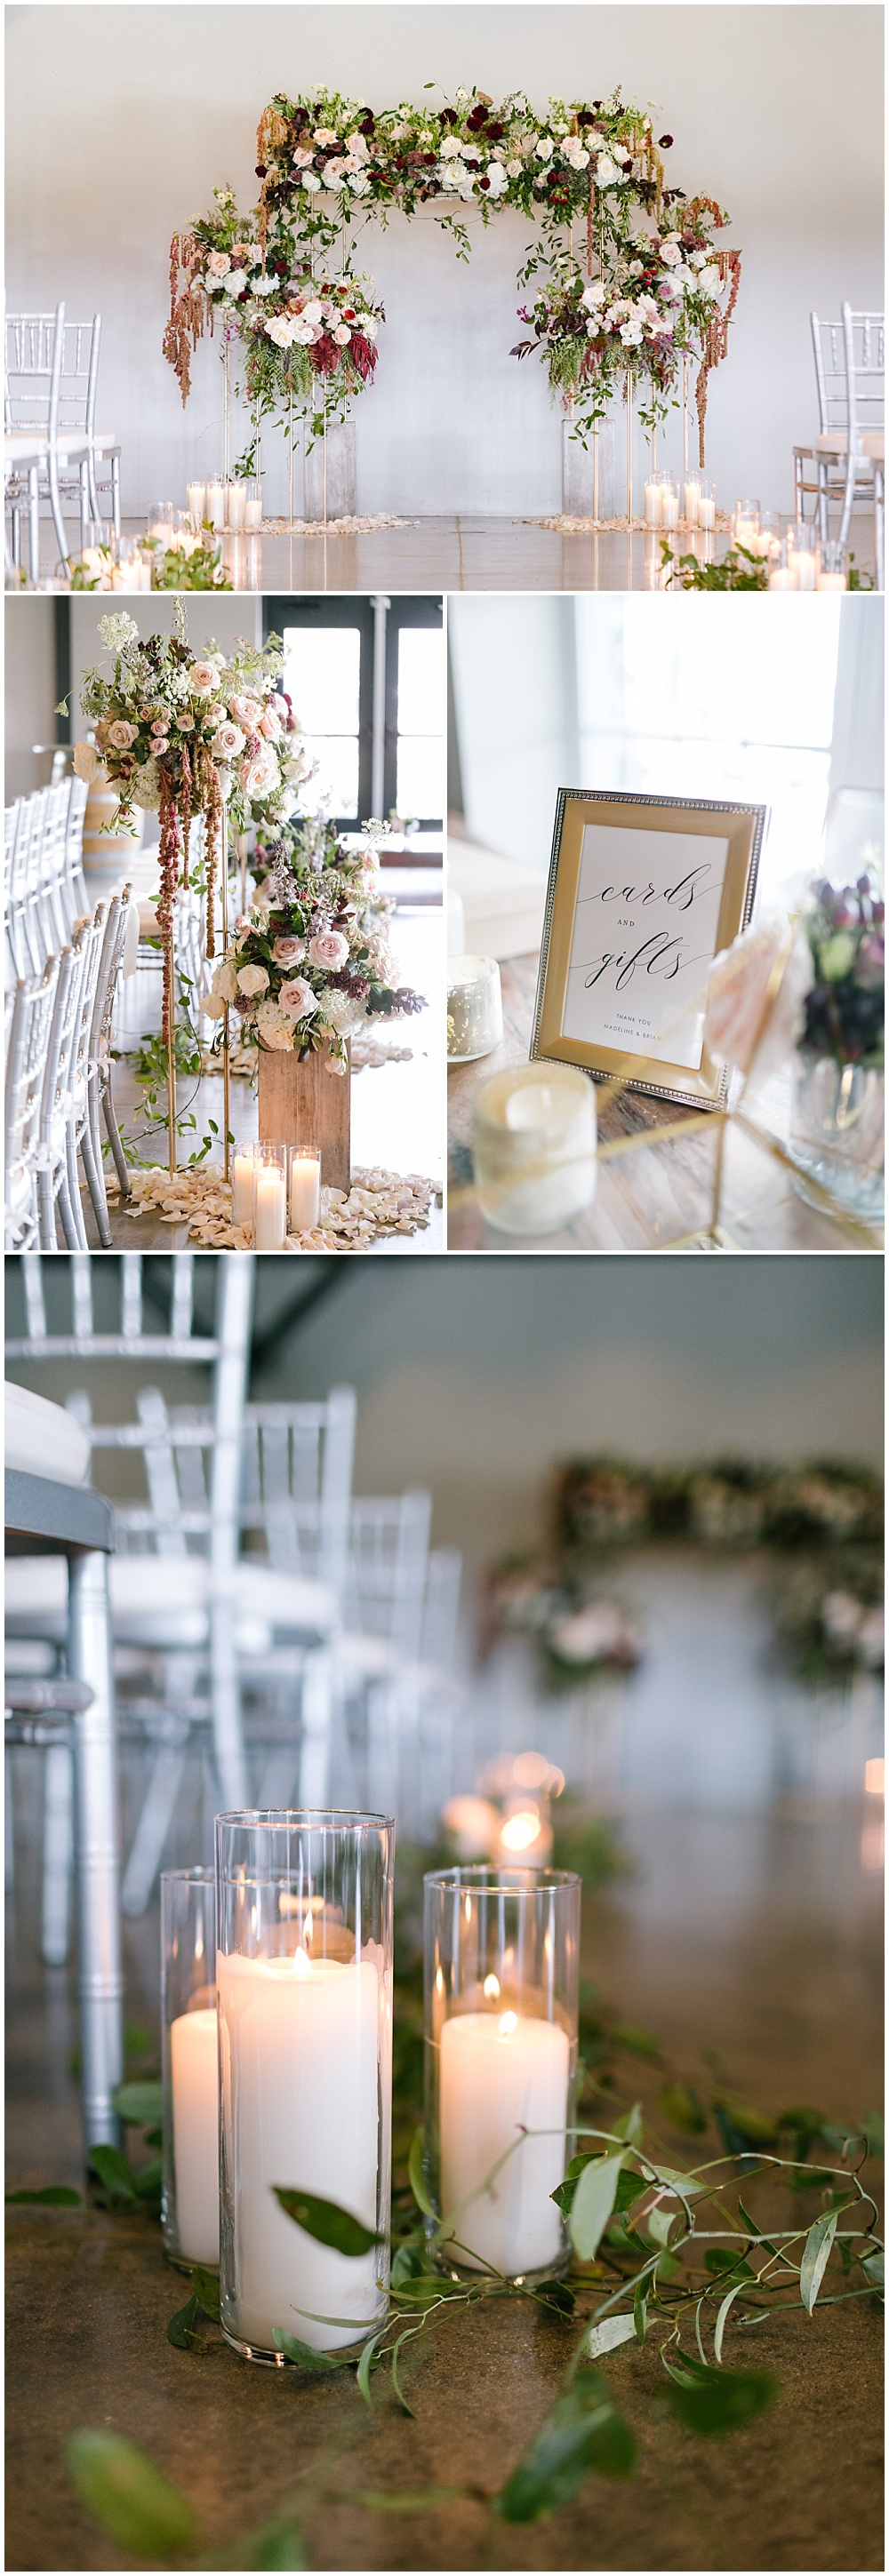 Rose quartz inspired wedding ceremony with a lush floral ceremony arch | Daniel's Vineyard wedding with Ivan & Louise + Jessica Dum Wedding Coordination